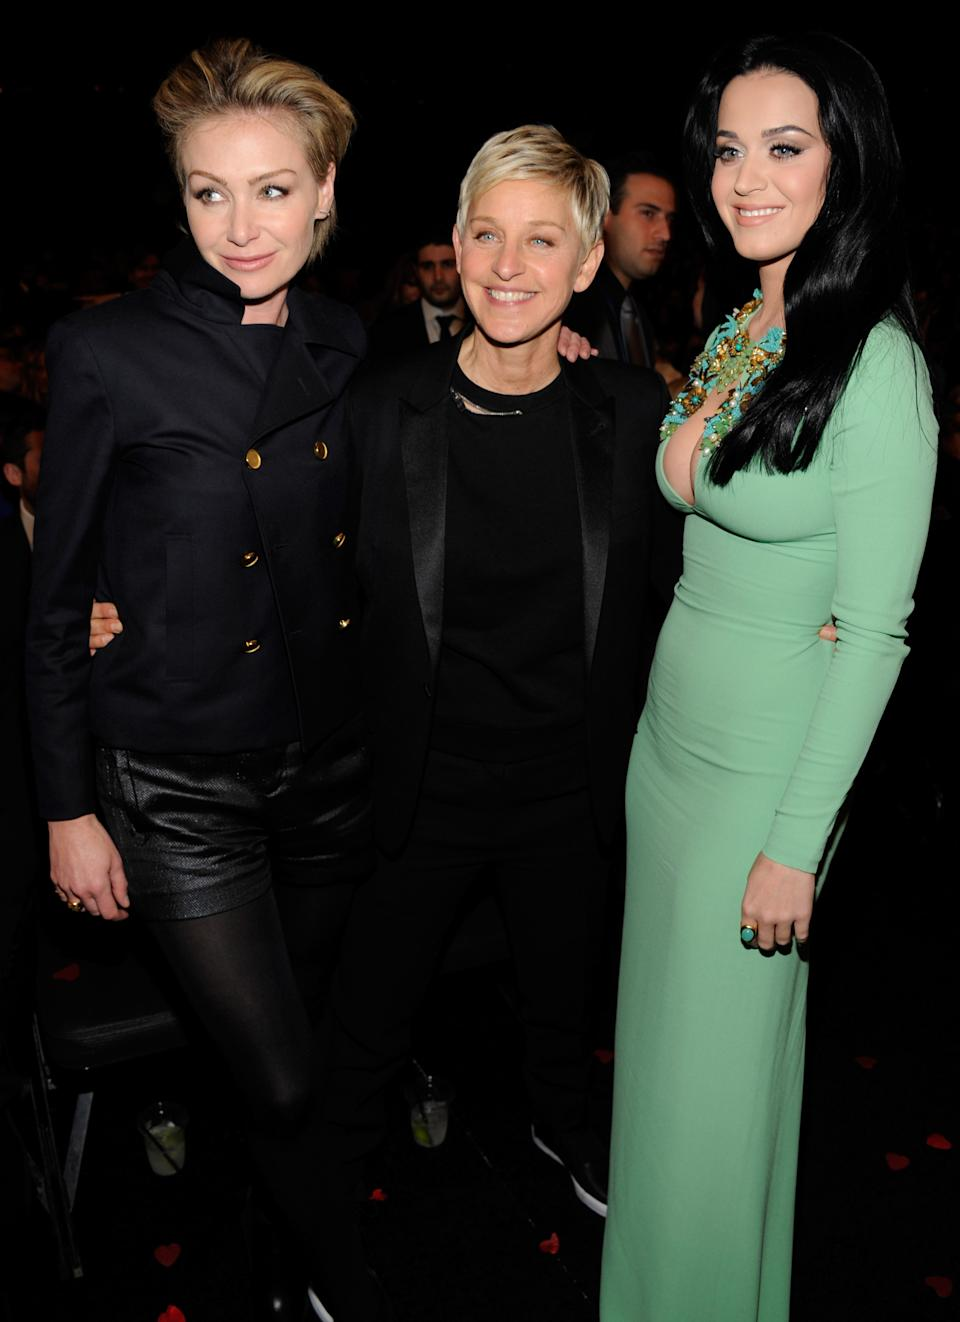 LOS ANGELES, CA - FEBRUARY 10:  Portia deRossi, Ellen DeGeneres and Katy Perry attend the 55th Annual GRAMMY Awards at STAPLES Center on February 10, 2013 in Los Angeles, California.  (Photo by Kevin Mazur/WireImage)